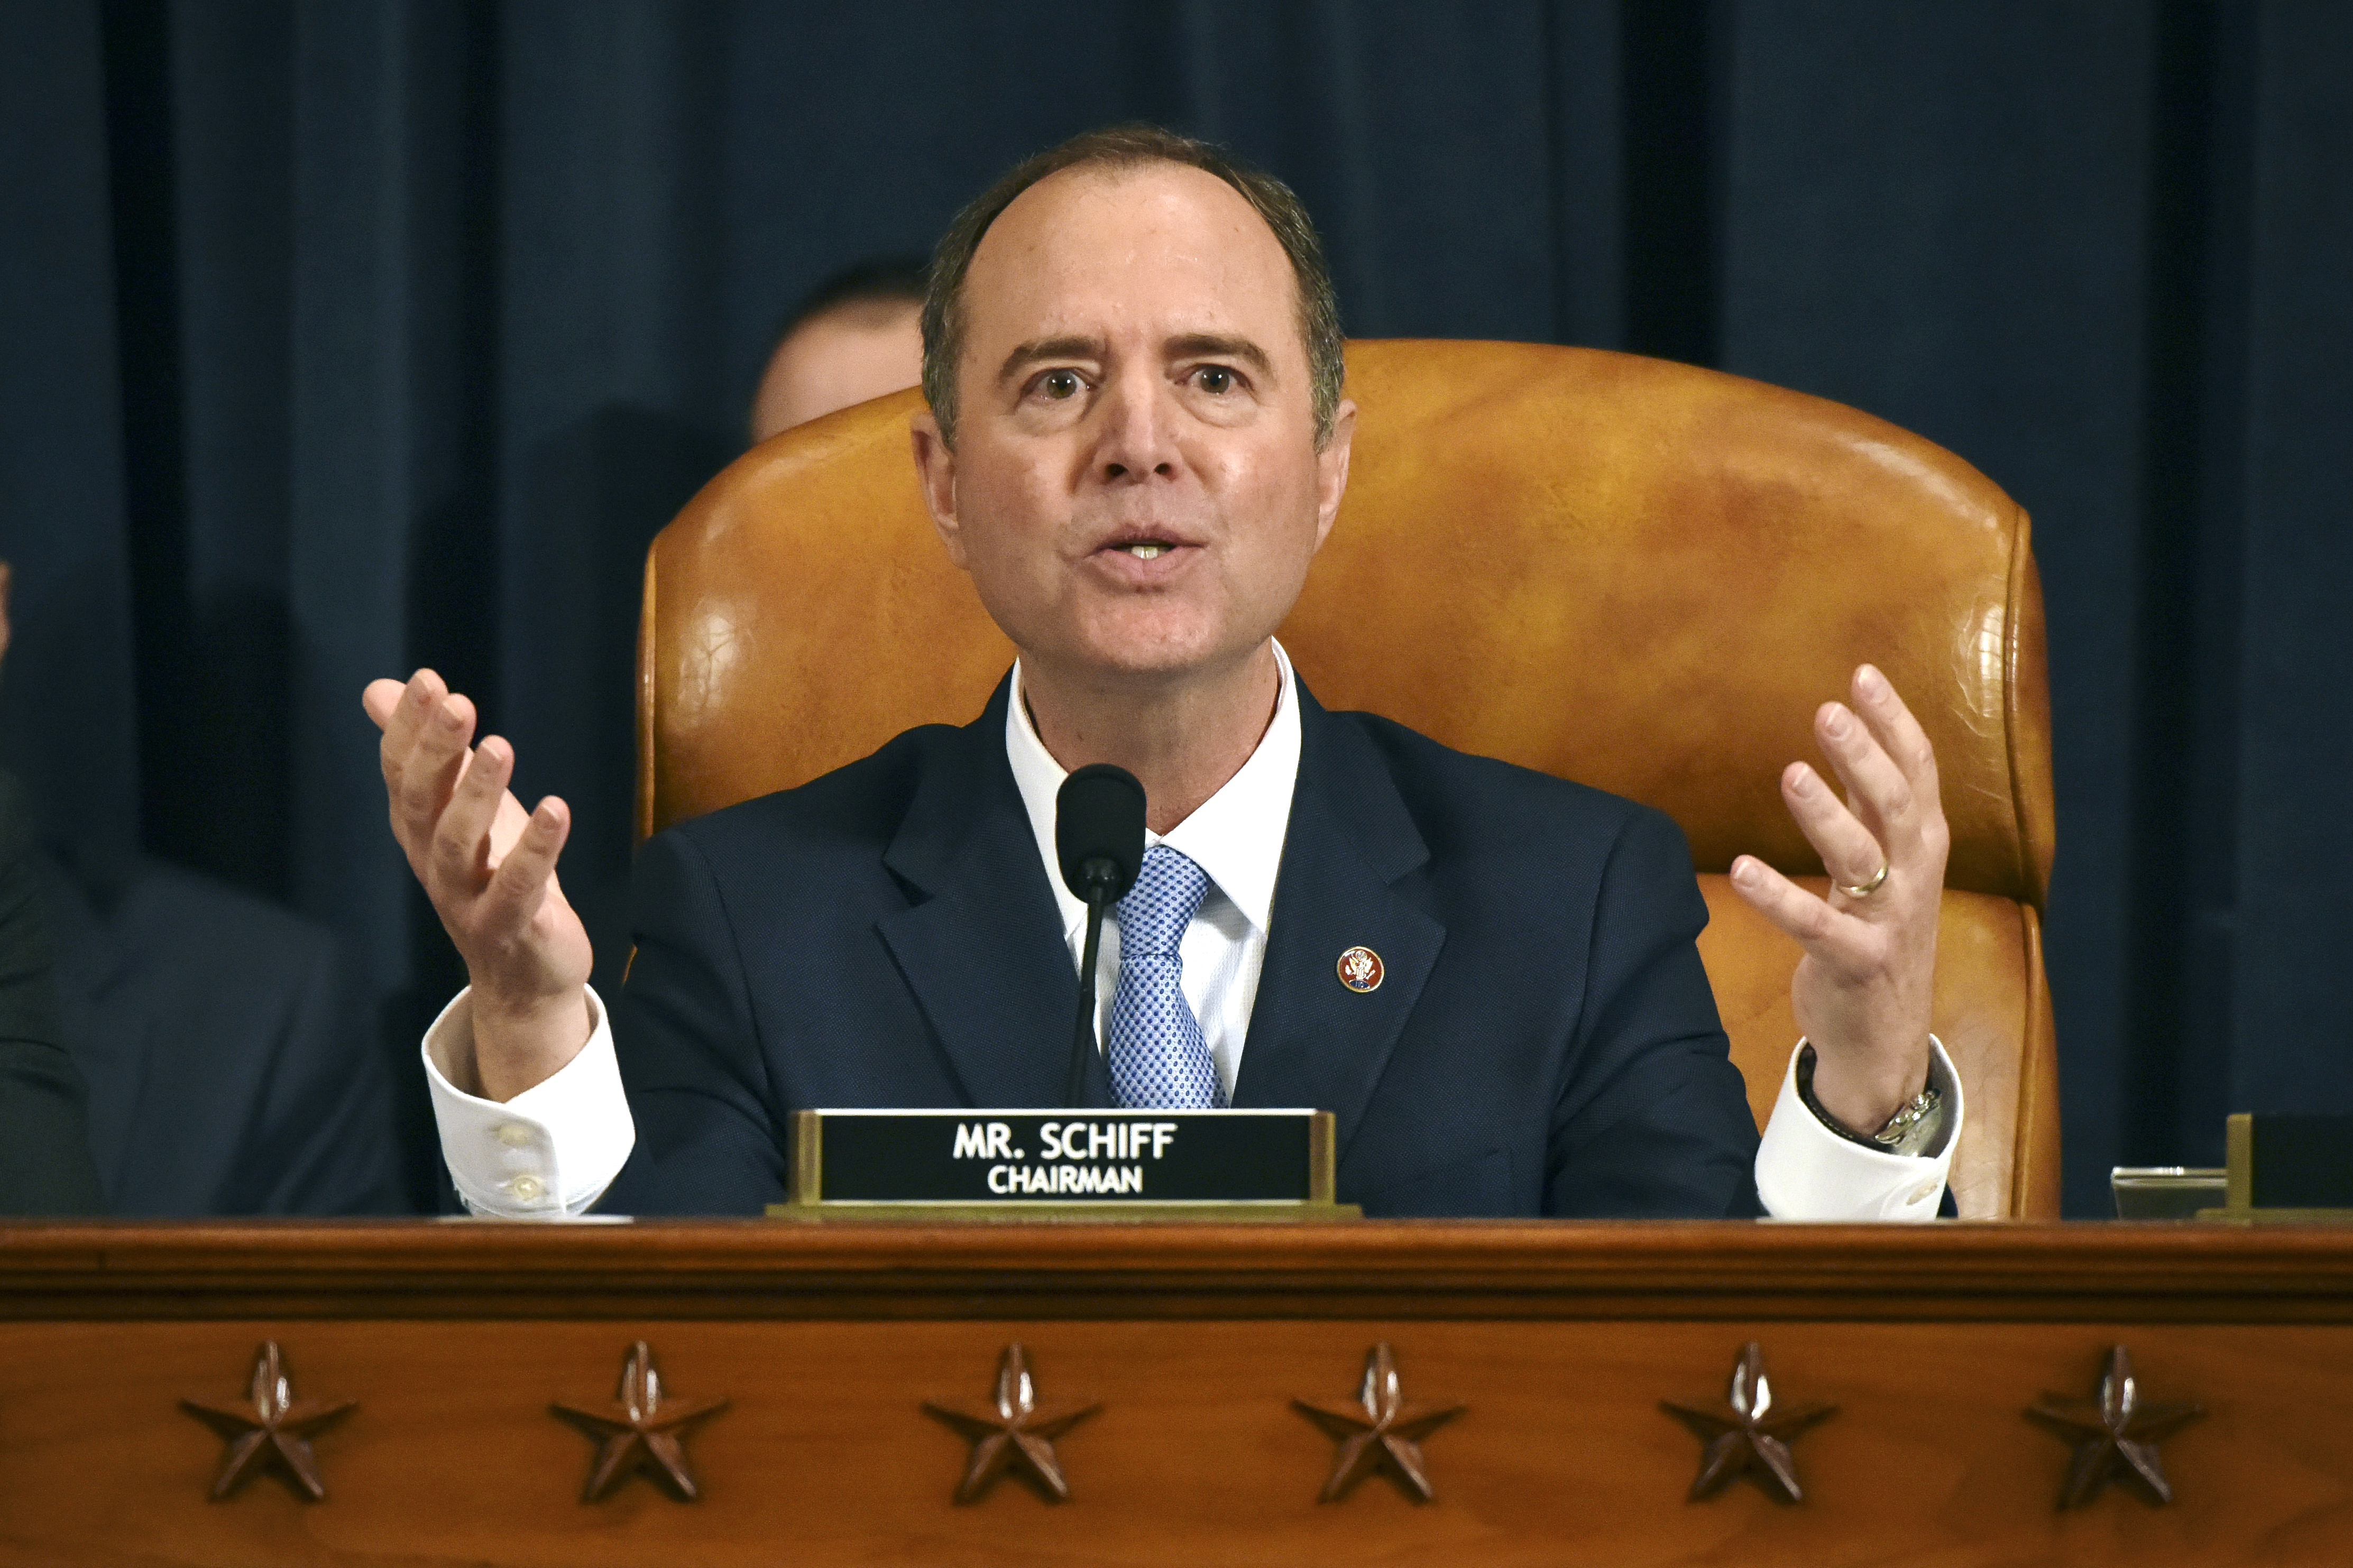 House Intelligence Committee Chairman Adam Schiff, D-Calif., gives final remarks during a hearing where former White House national security aide Fiona Hill, and David Holmes, a U.S. diplomat in Ukraine, testified before the House Intelligence Committee on Capitol Hill in Washington, Thursday, Nov. 21, 2019, during a public impeachment hearing of President Donald Trump's efforts to tie U.S. aid for Ukraine to investigations of his political opponents.